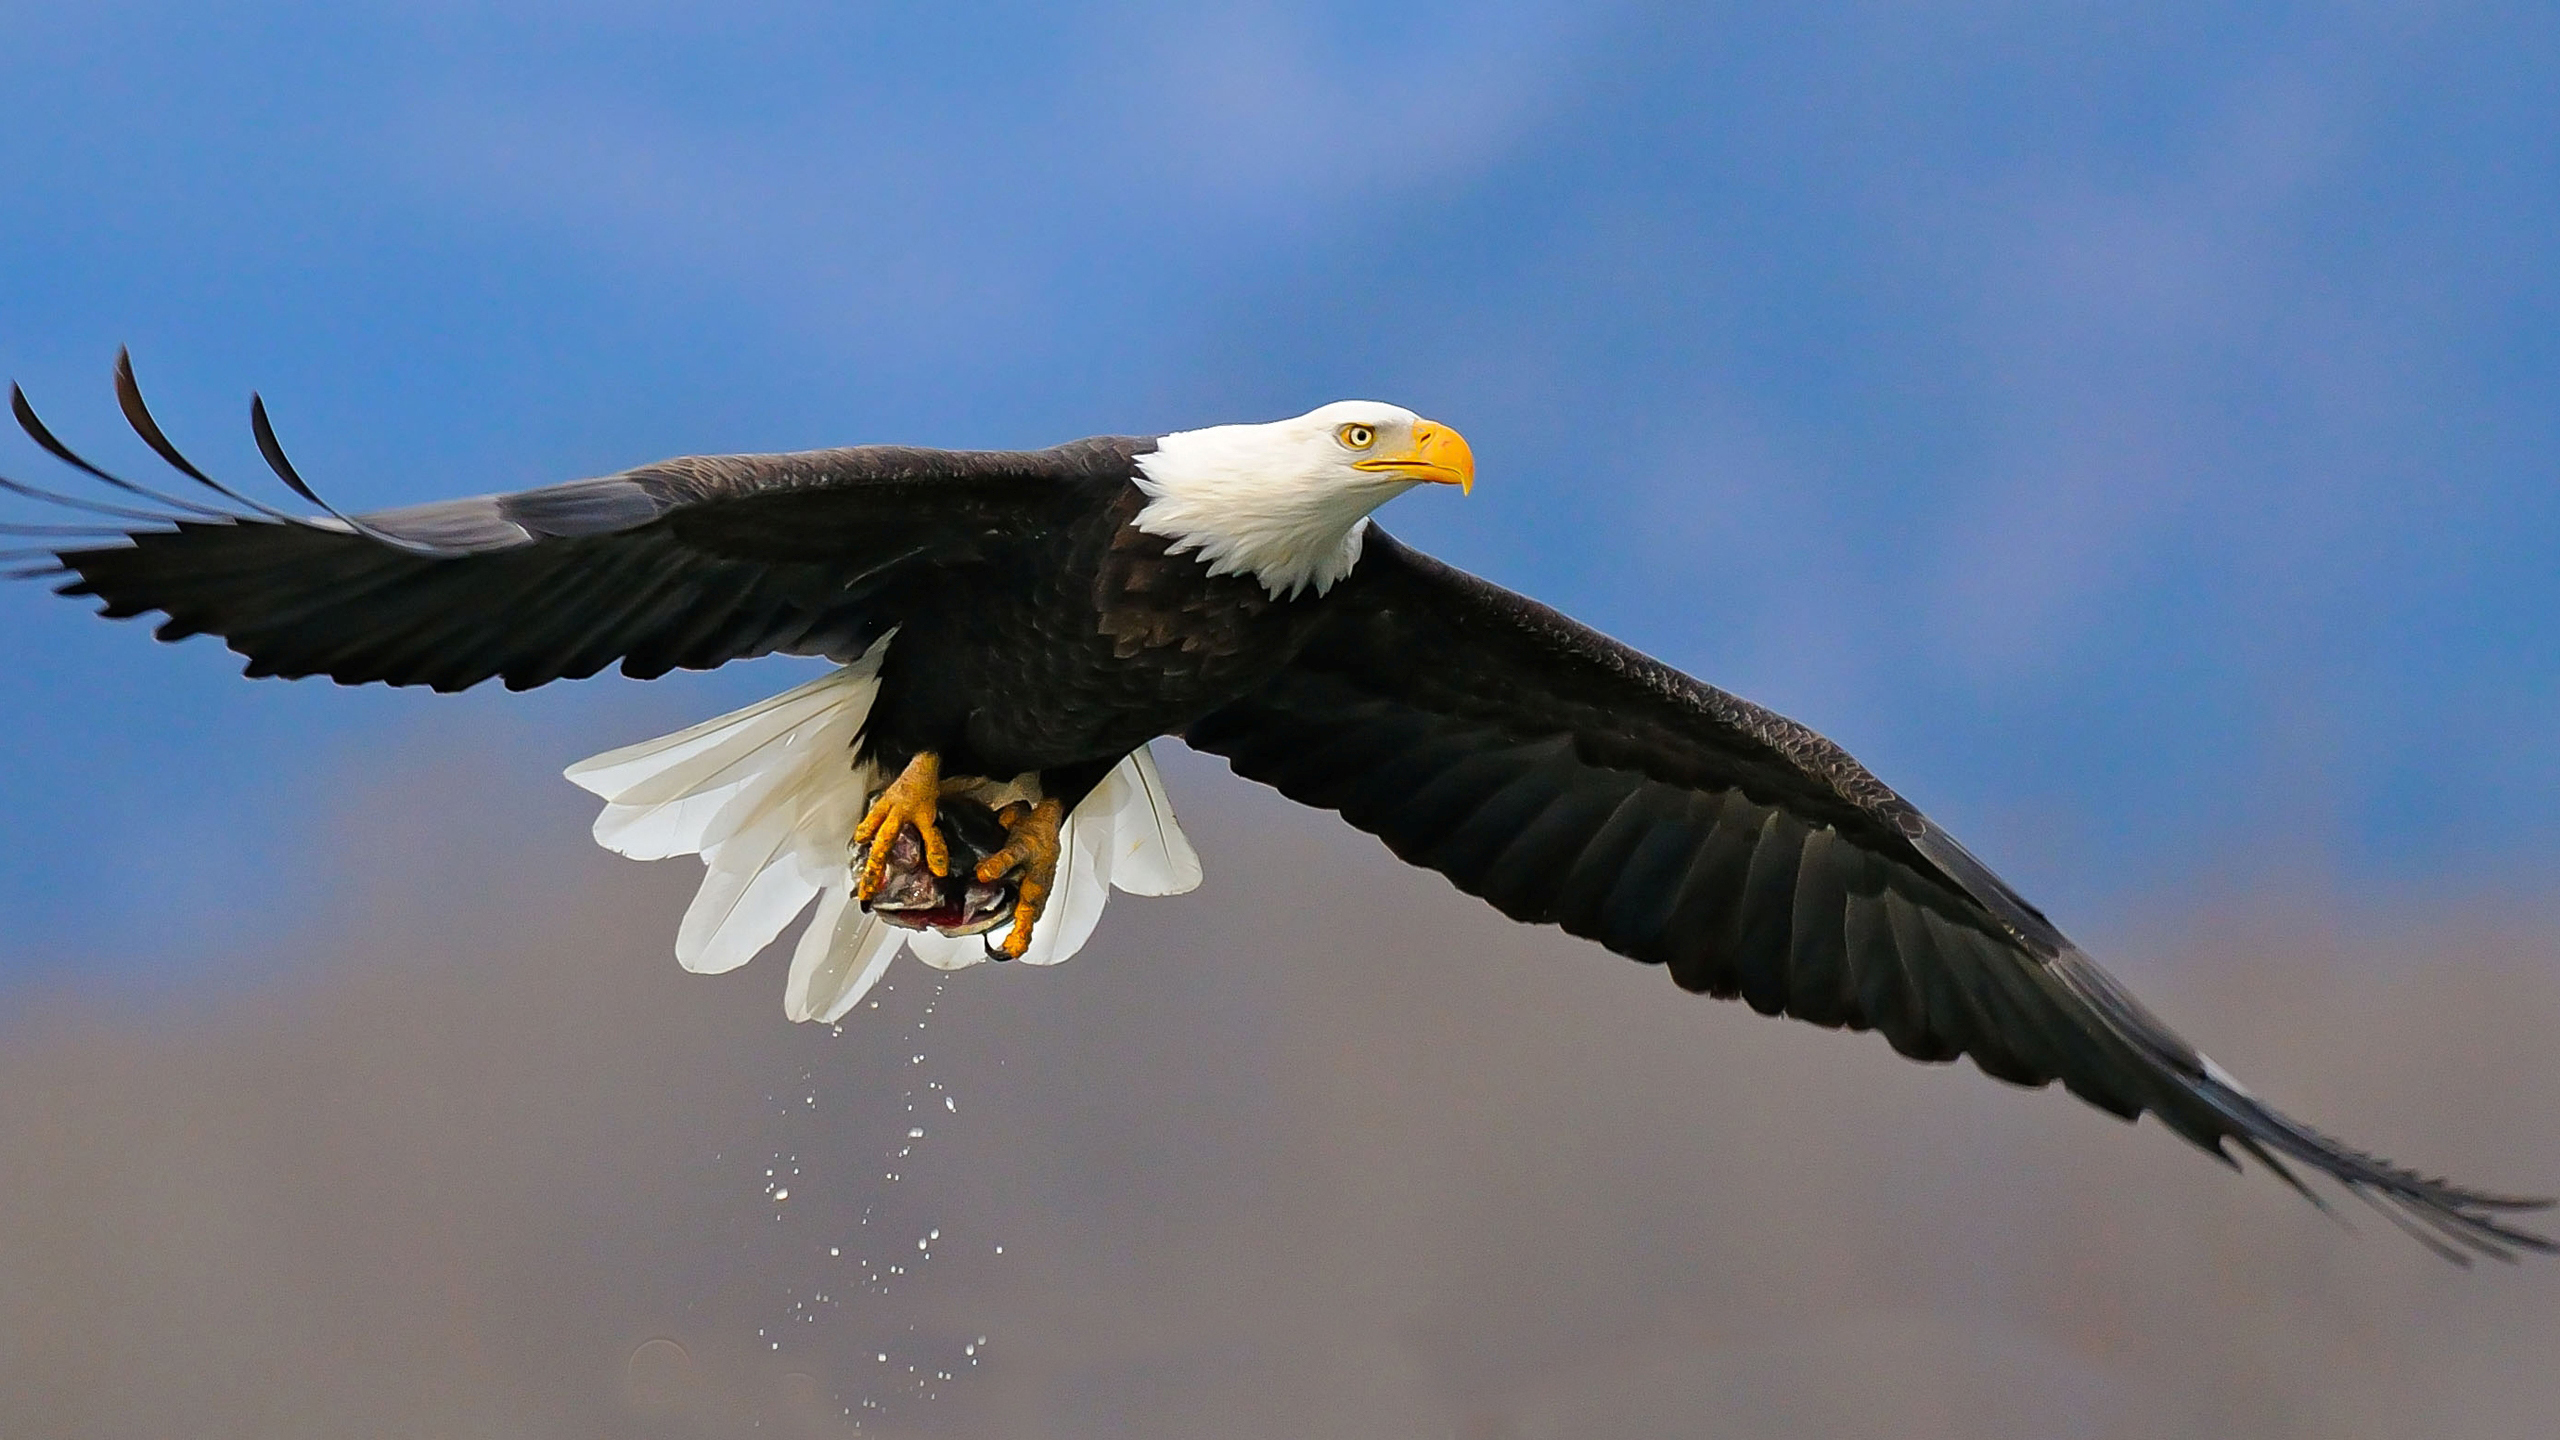 bald eagle hd wallpaper | background image | 2560x1440 | id:432595